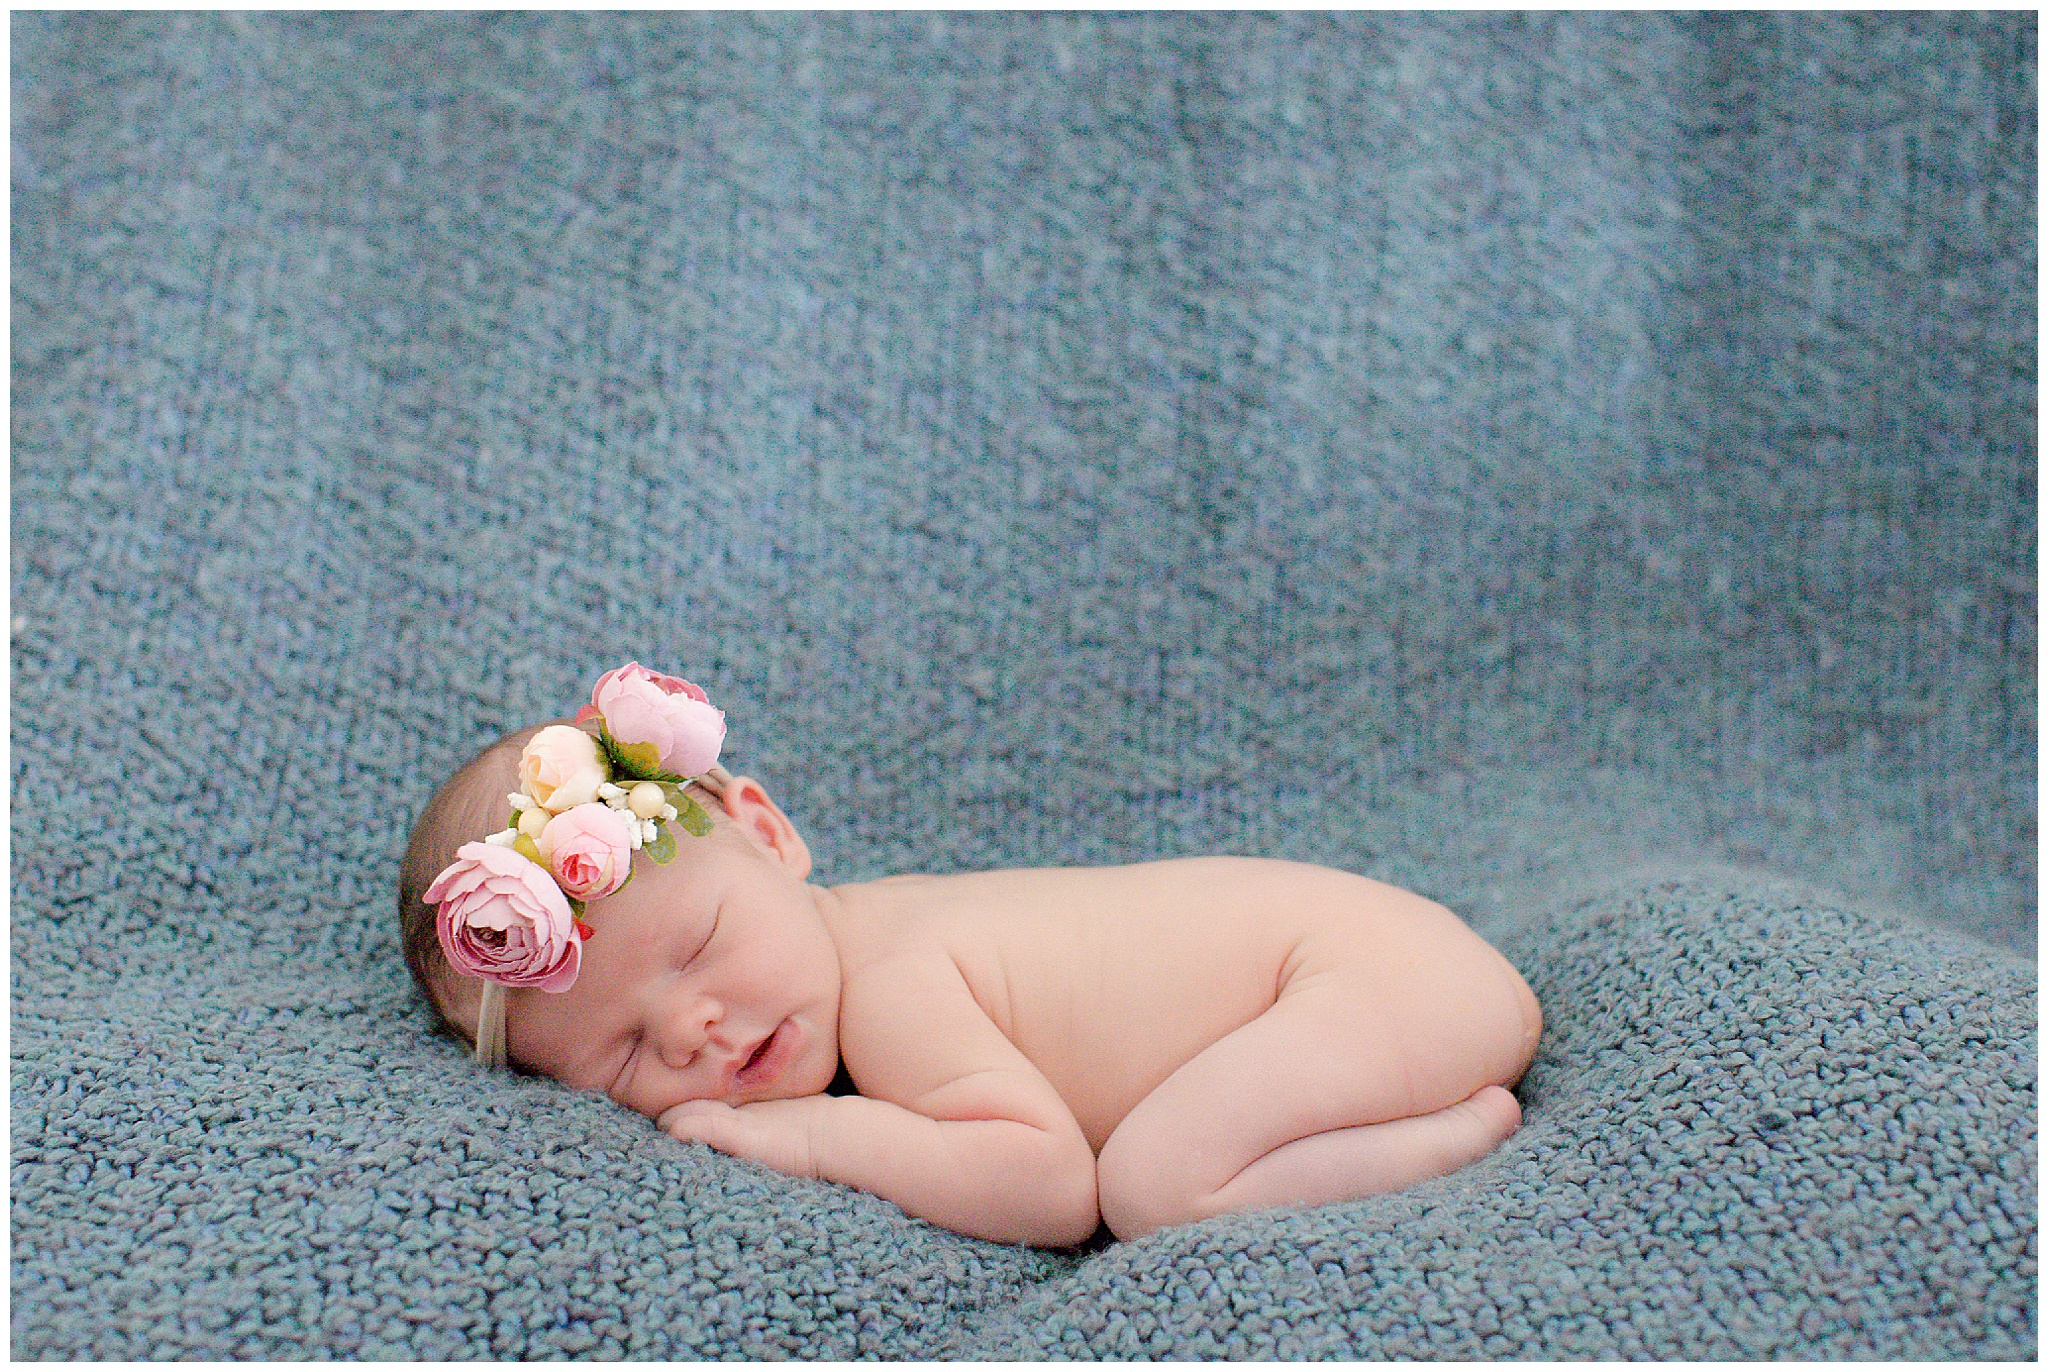 Letendre-newborn-session_0007.jpg